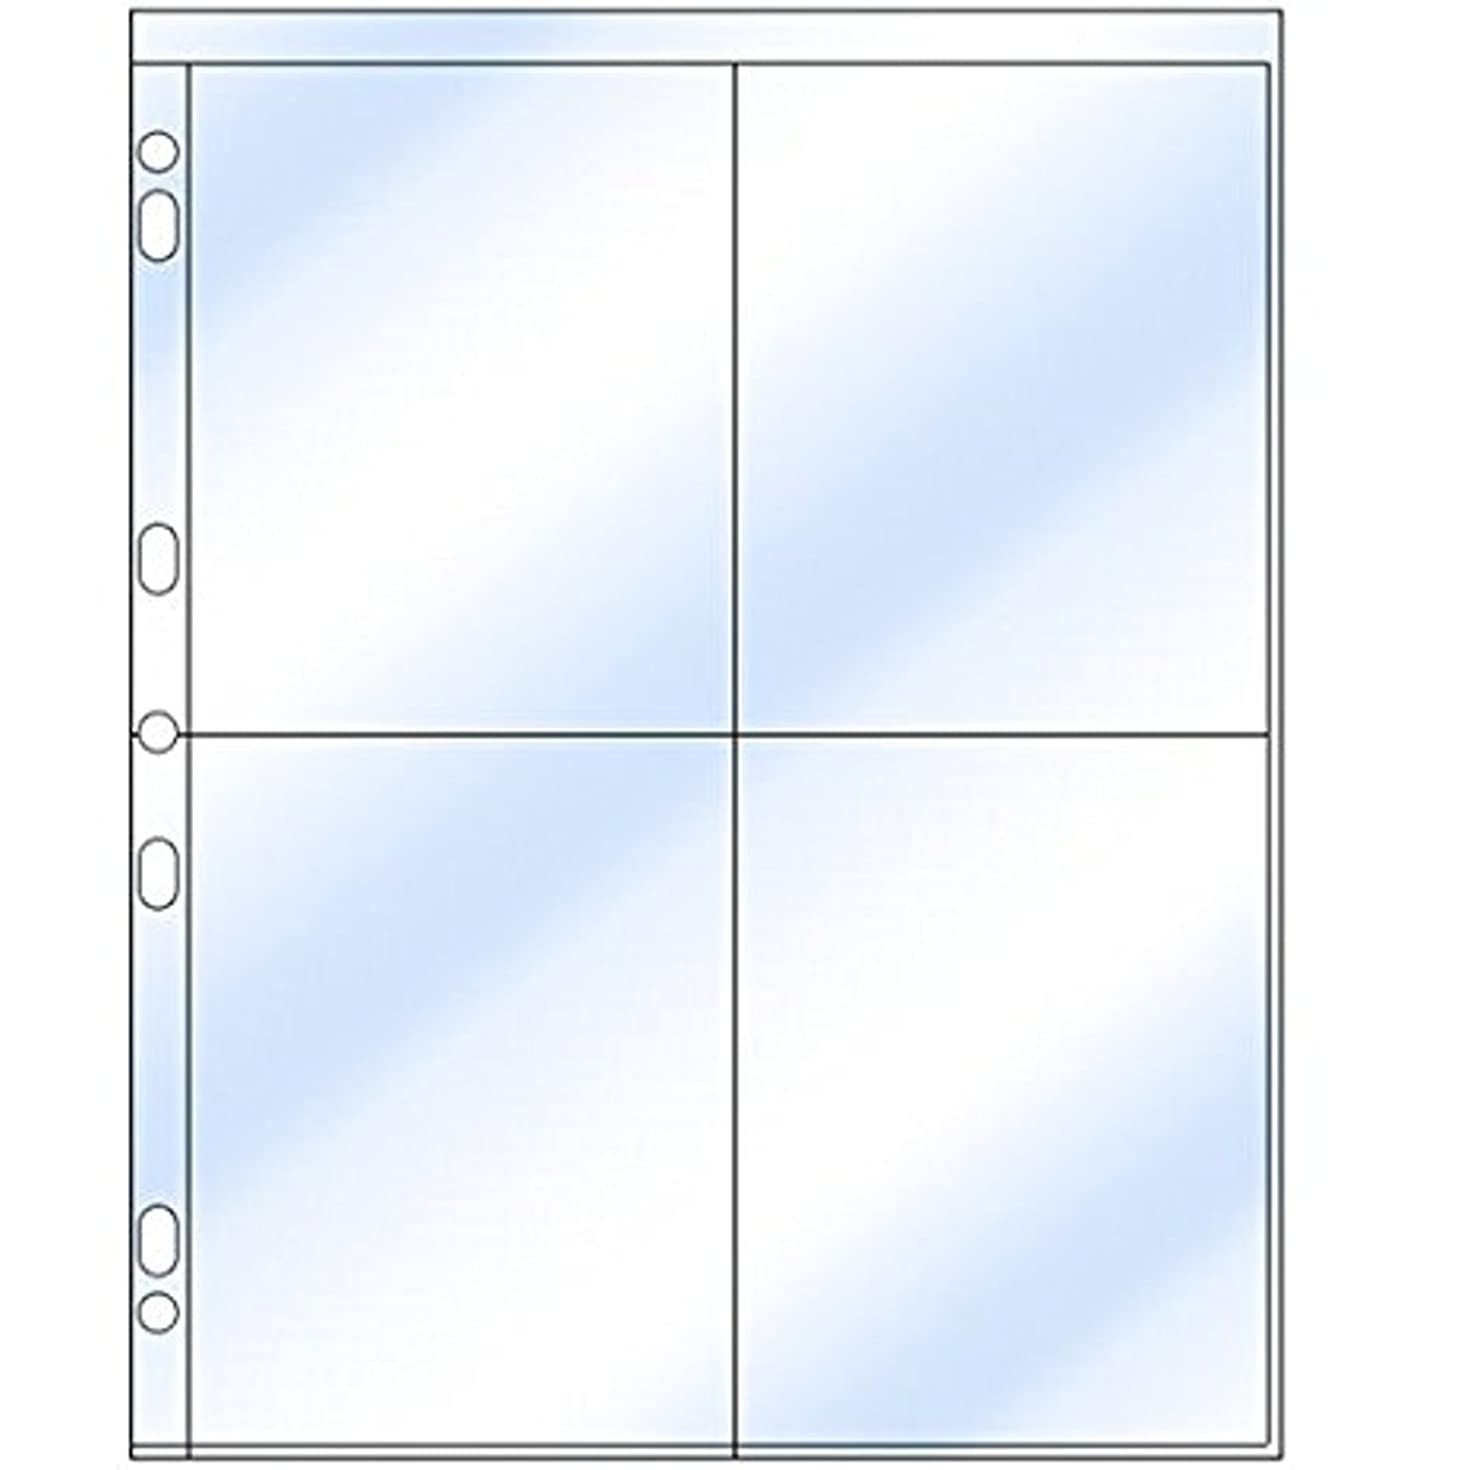 Clear File - Photo Page for 3-Ring Binders - Archival-Plus Safe Plastic - Four 4